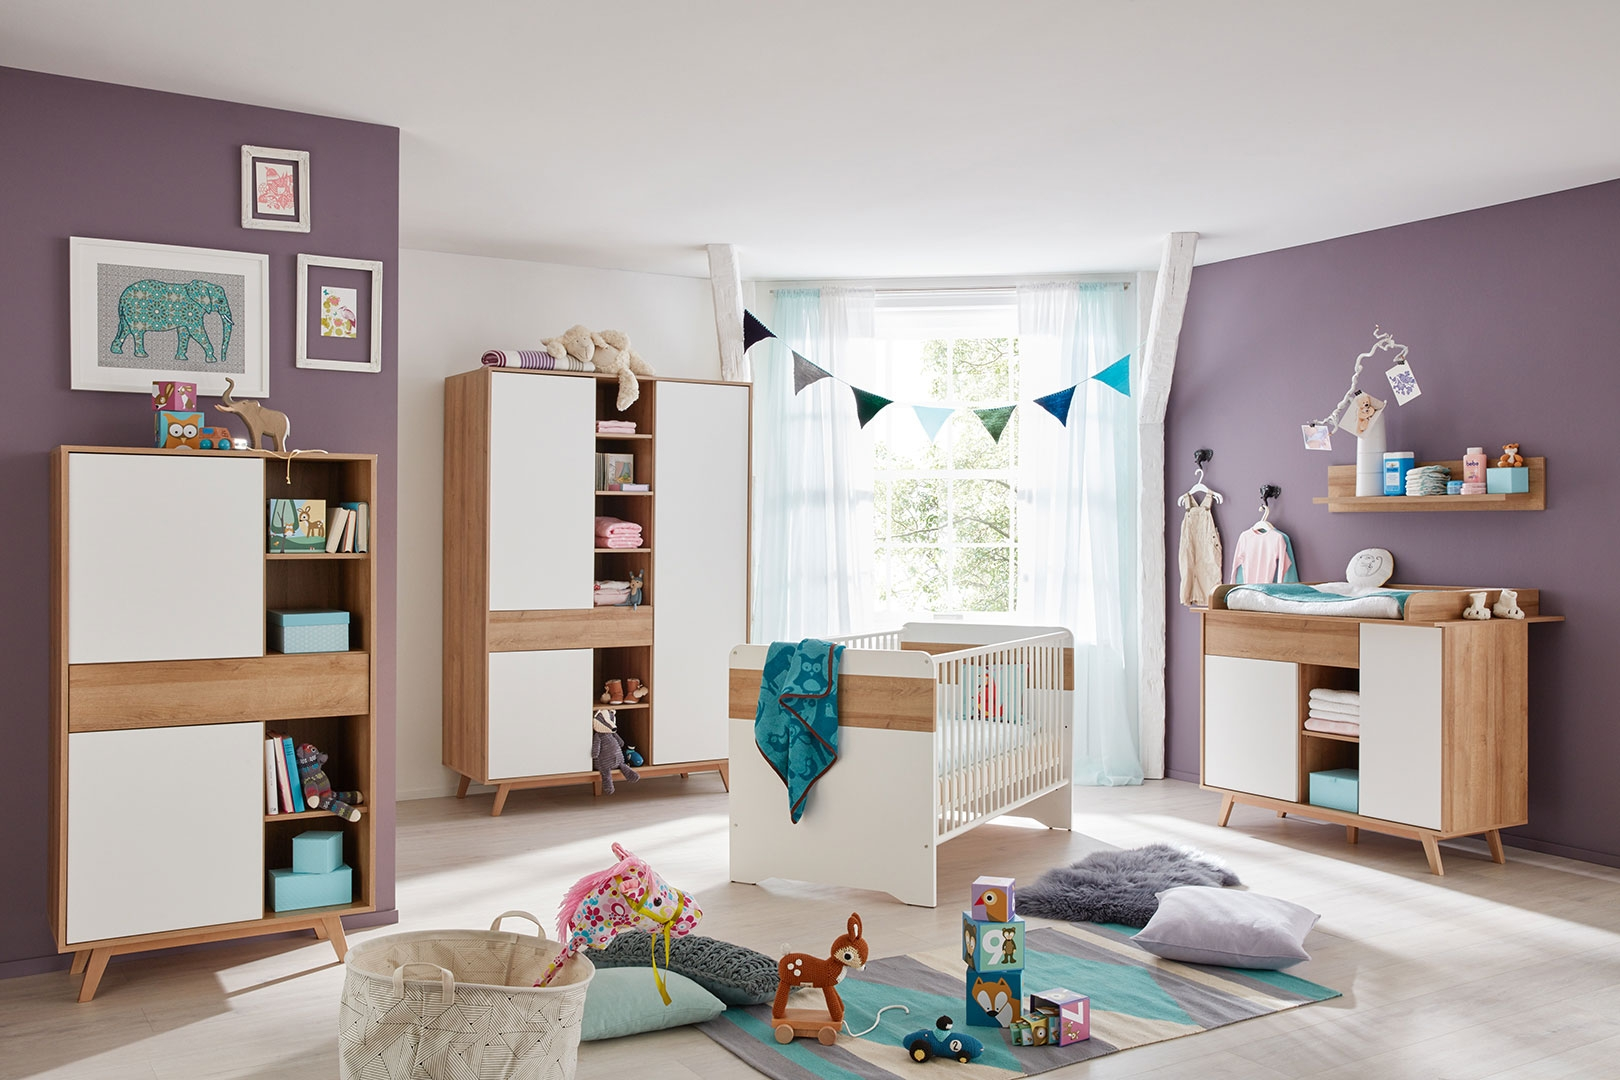 Best deals in discounted kid's bedroom furniture